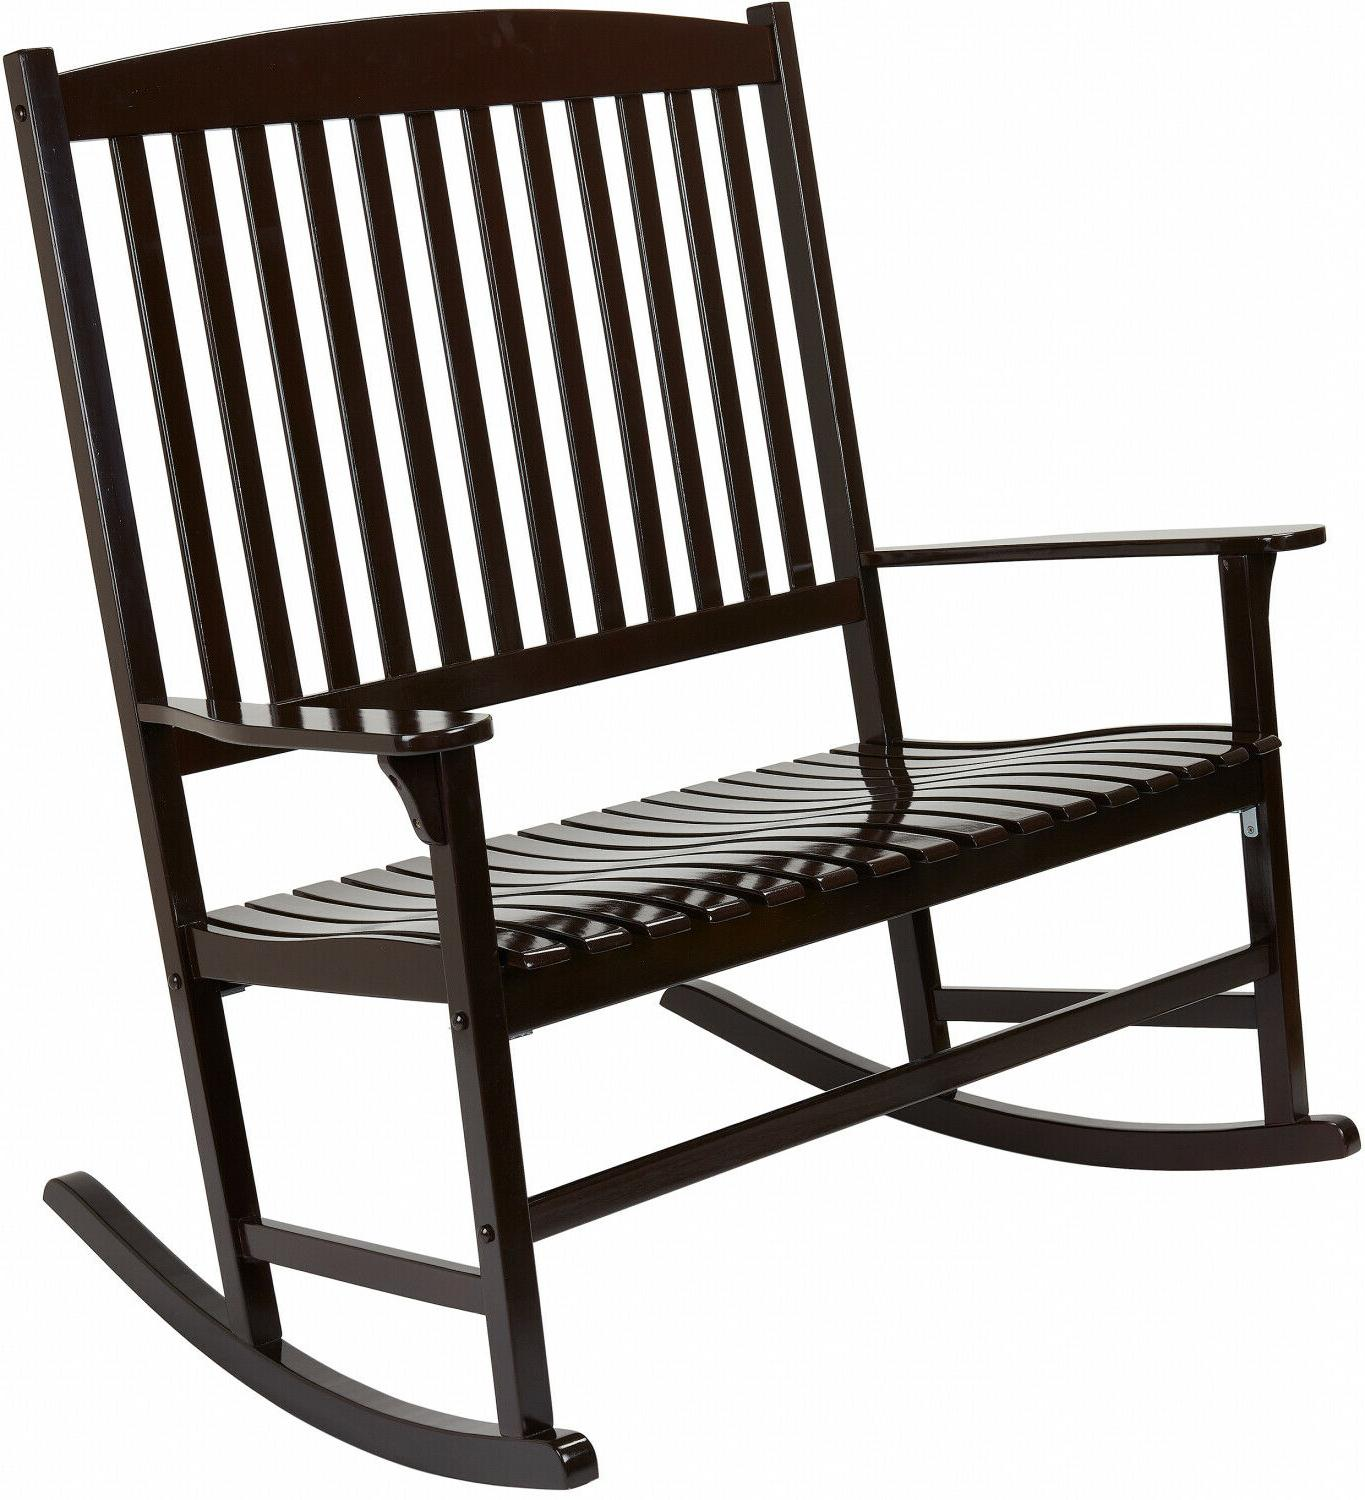 Outdoor Wood 2-Person Rocking Chair Patio Porch Deck Classic